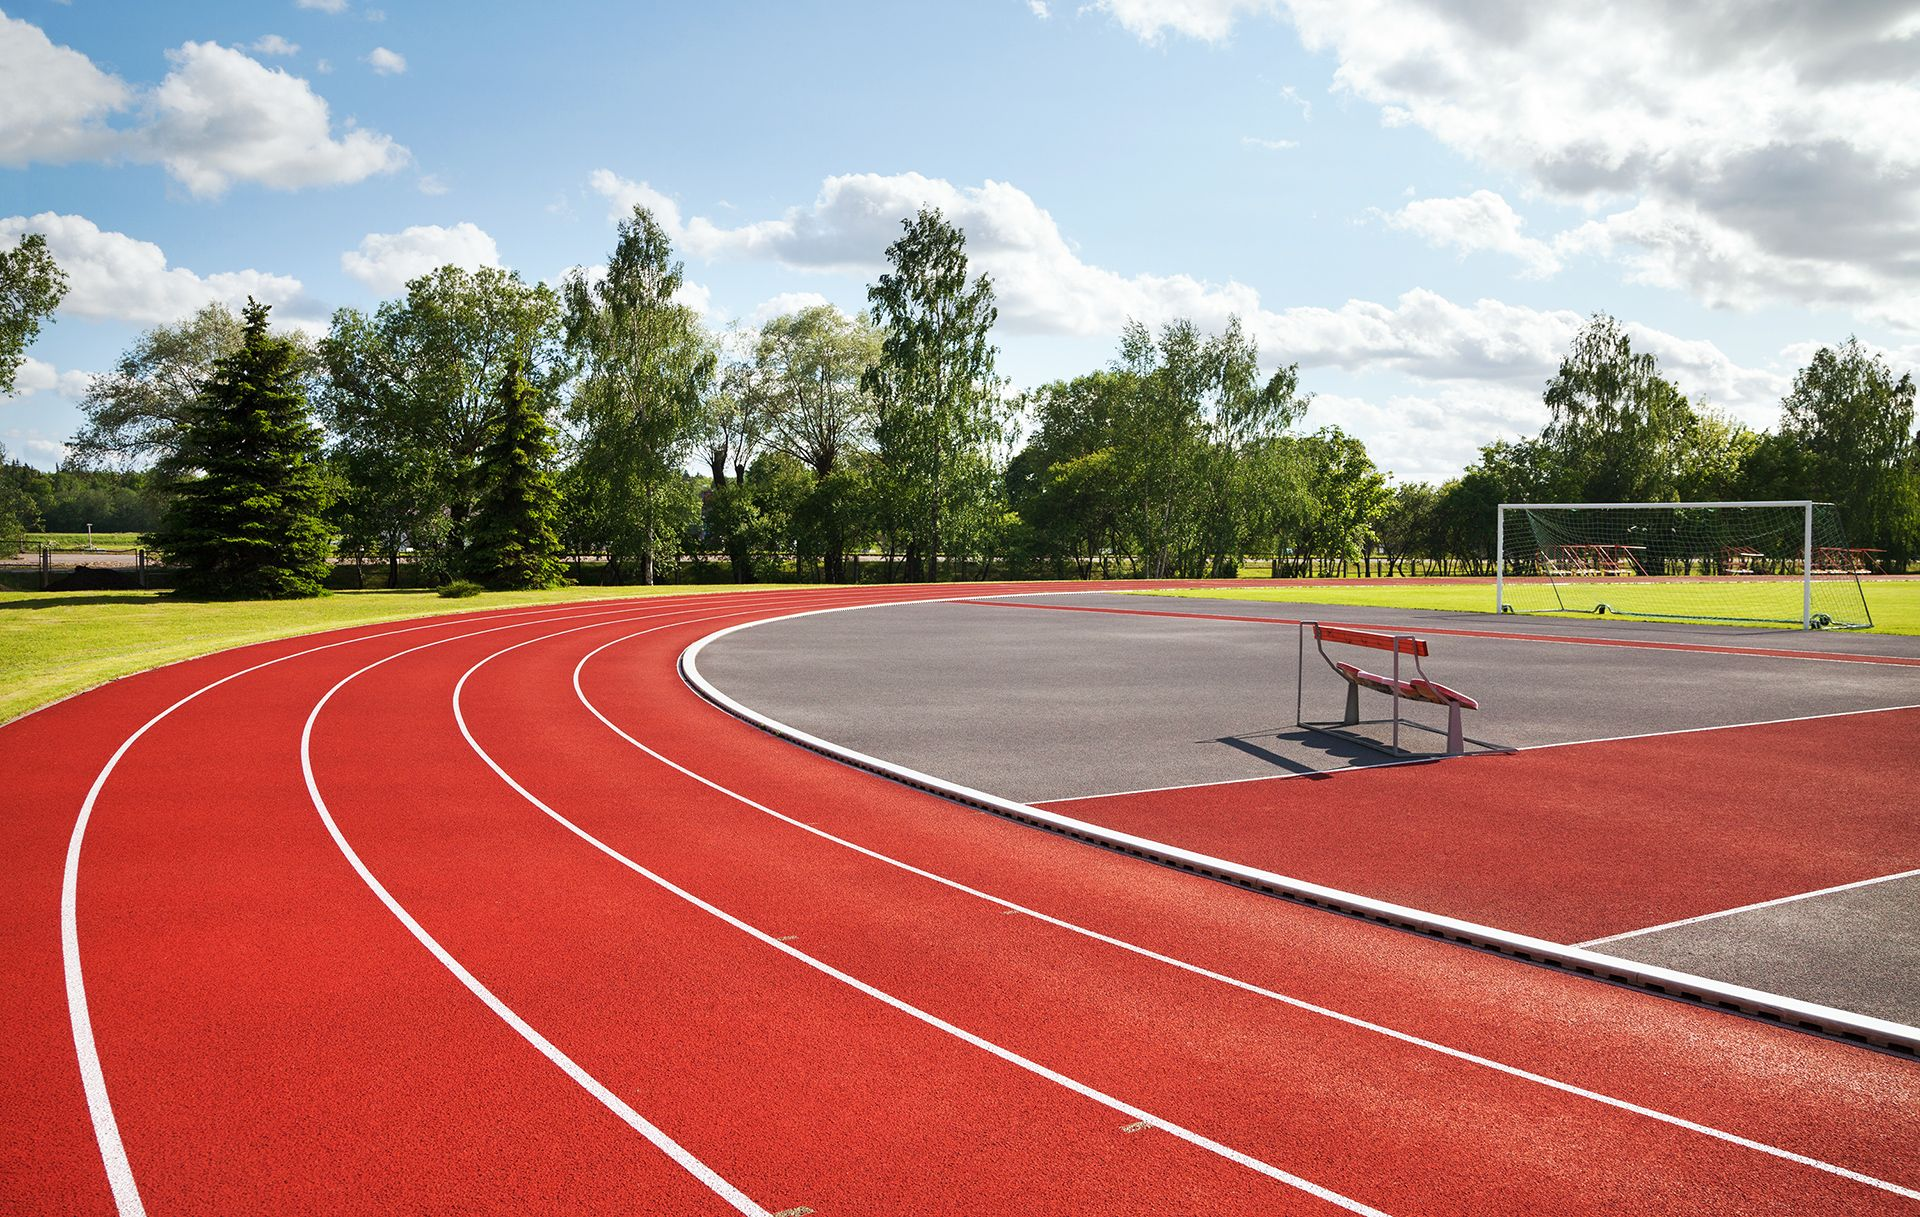 Commercial Paving Projects - School Running Tracks